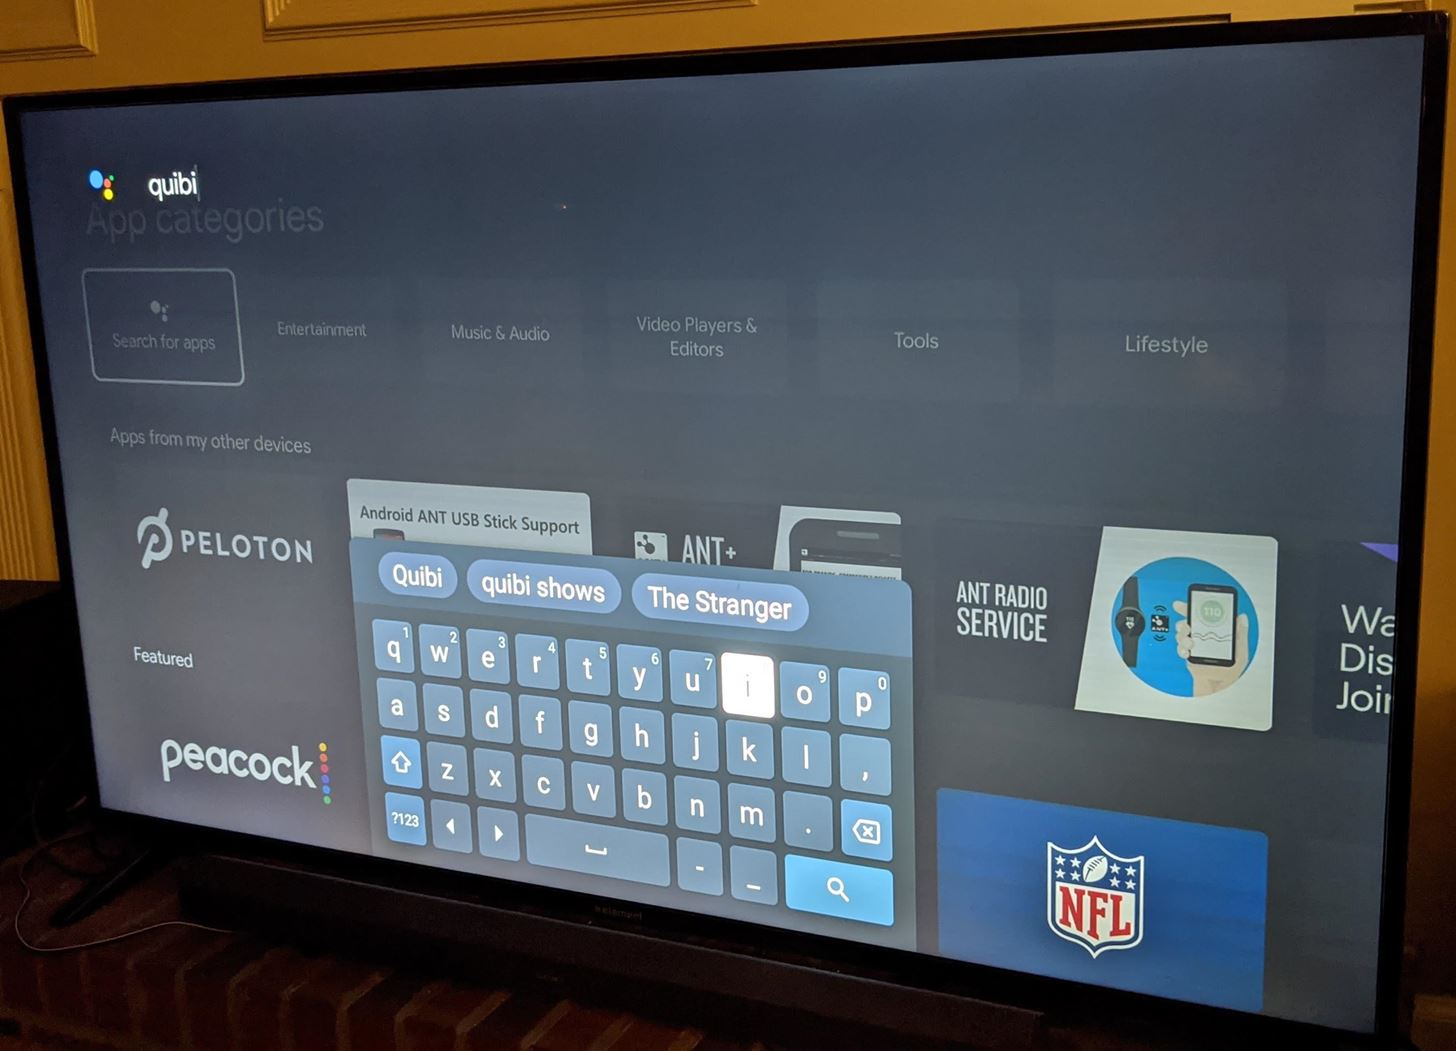 How to Install Apps on Chromecast with Google TV